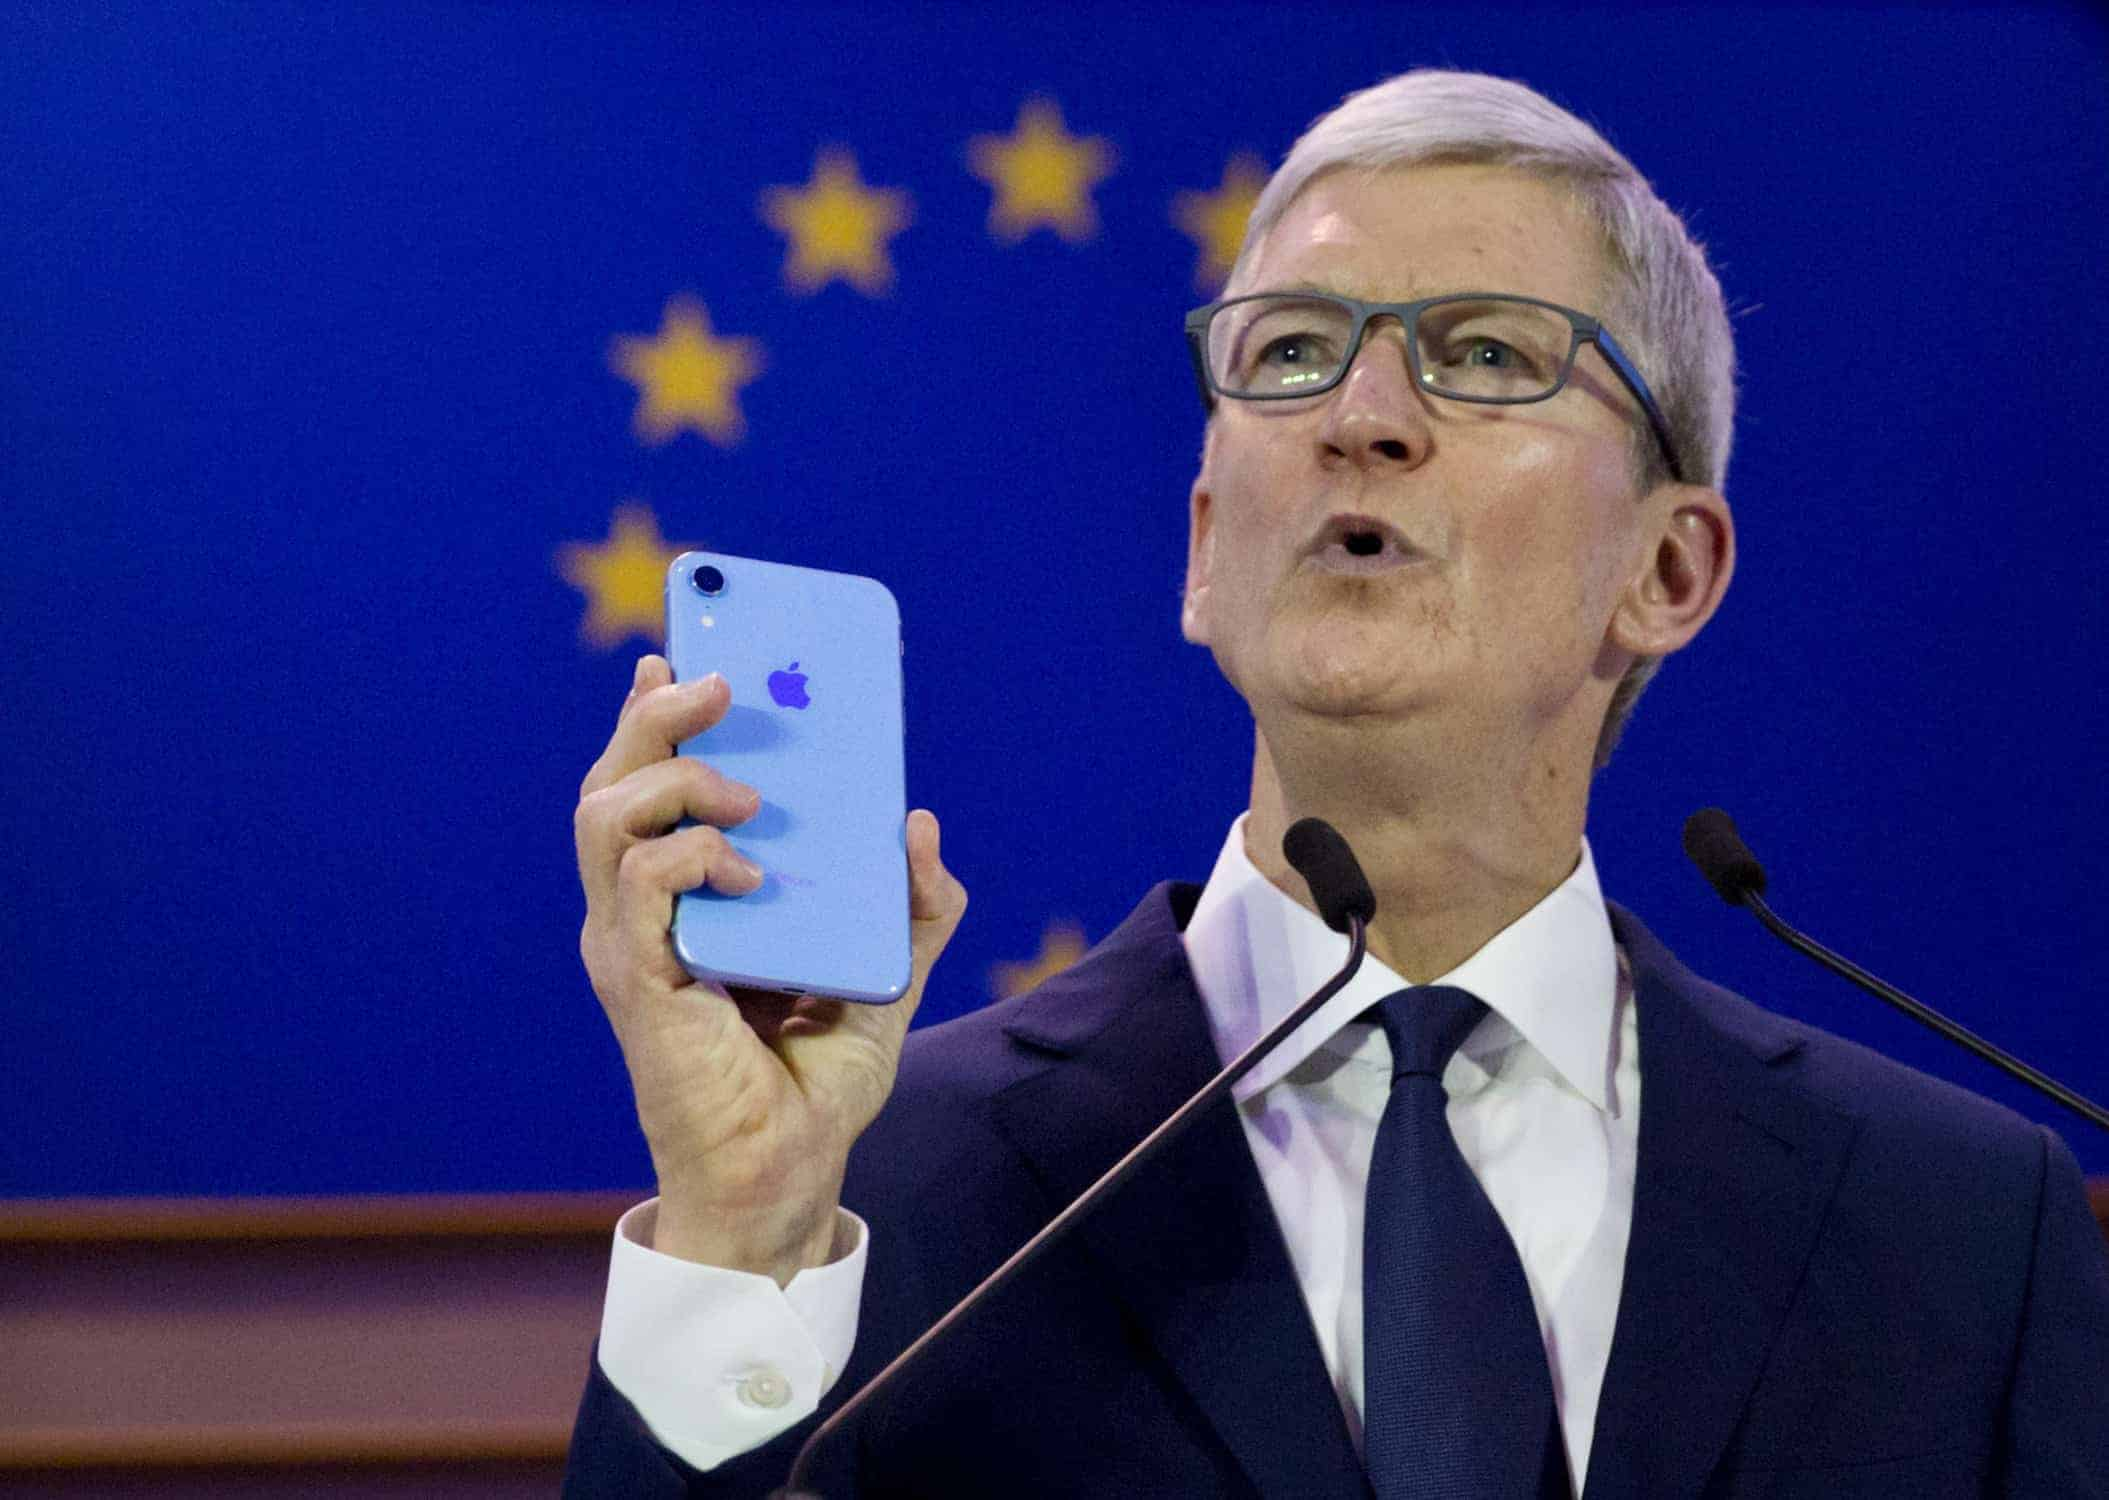 Apple CEO Tim Cook in Brussels, at the International Conference of Data Protection and Privacy Commissioners.